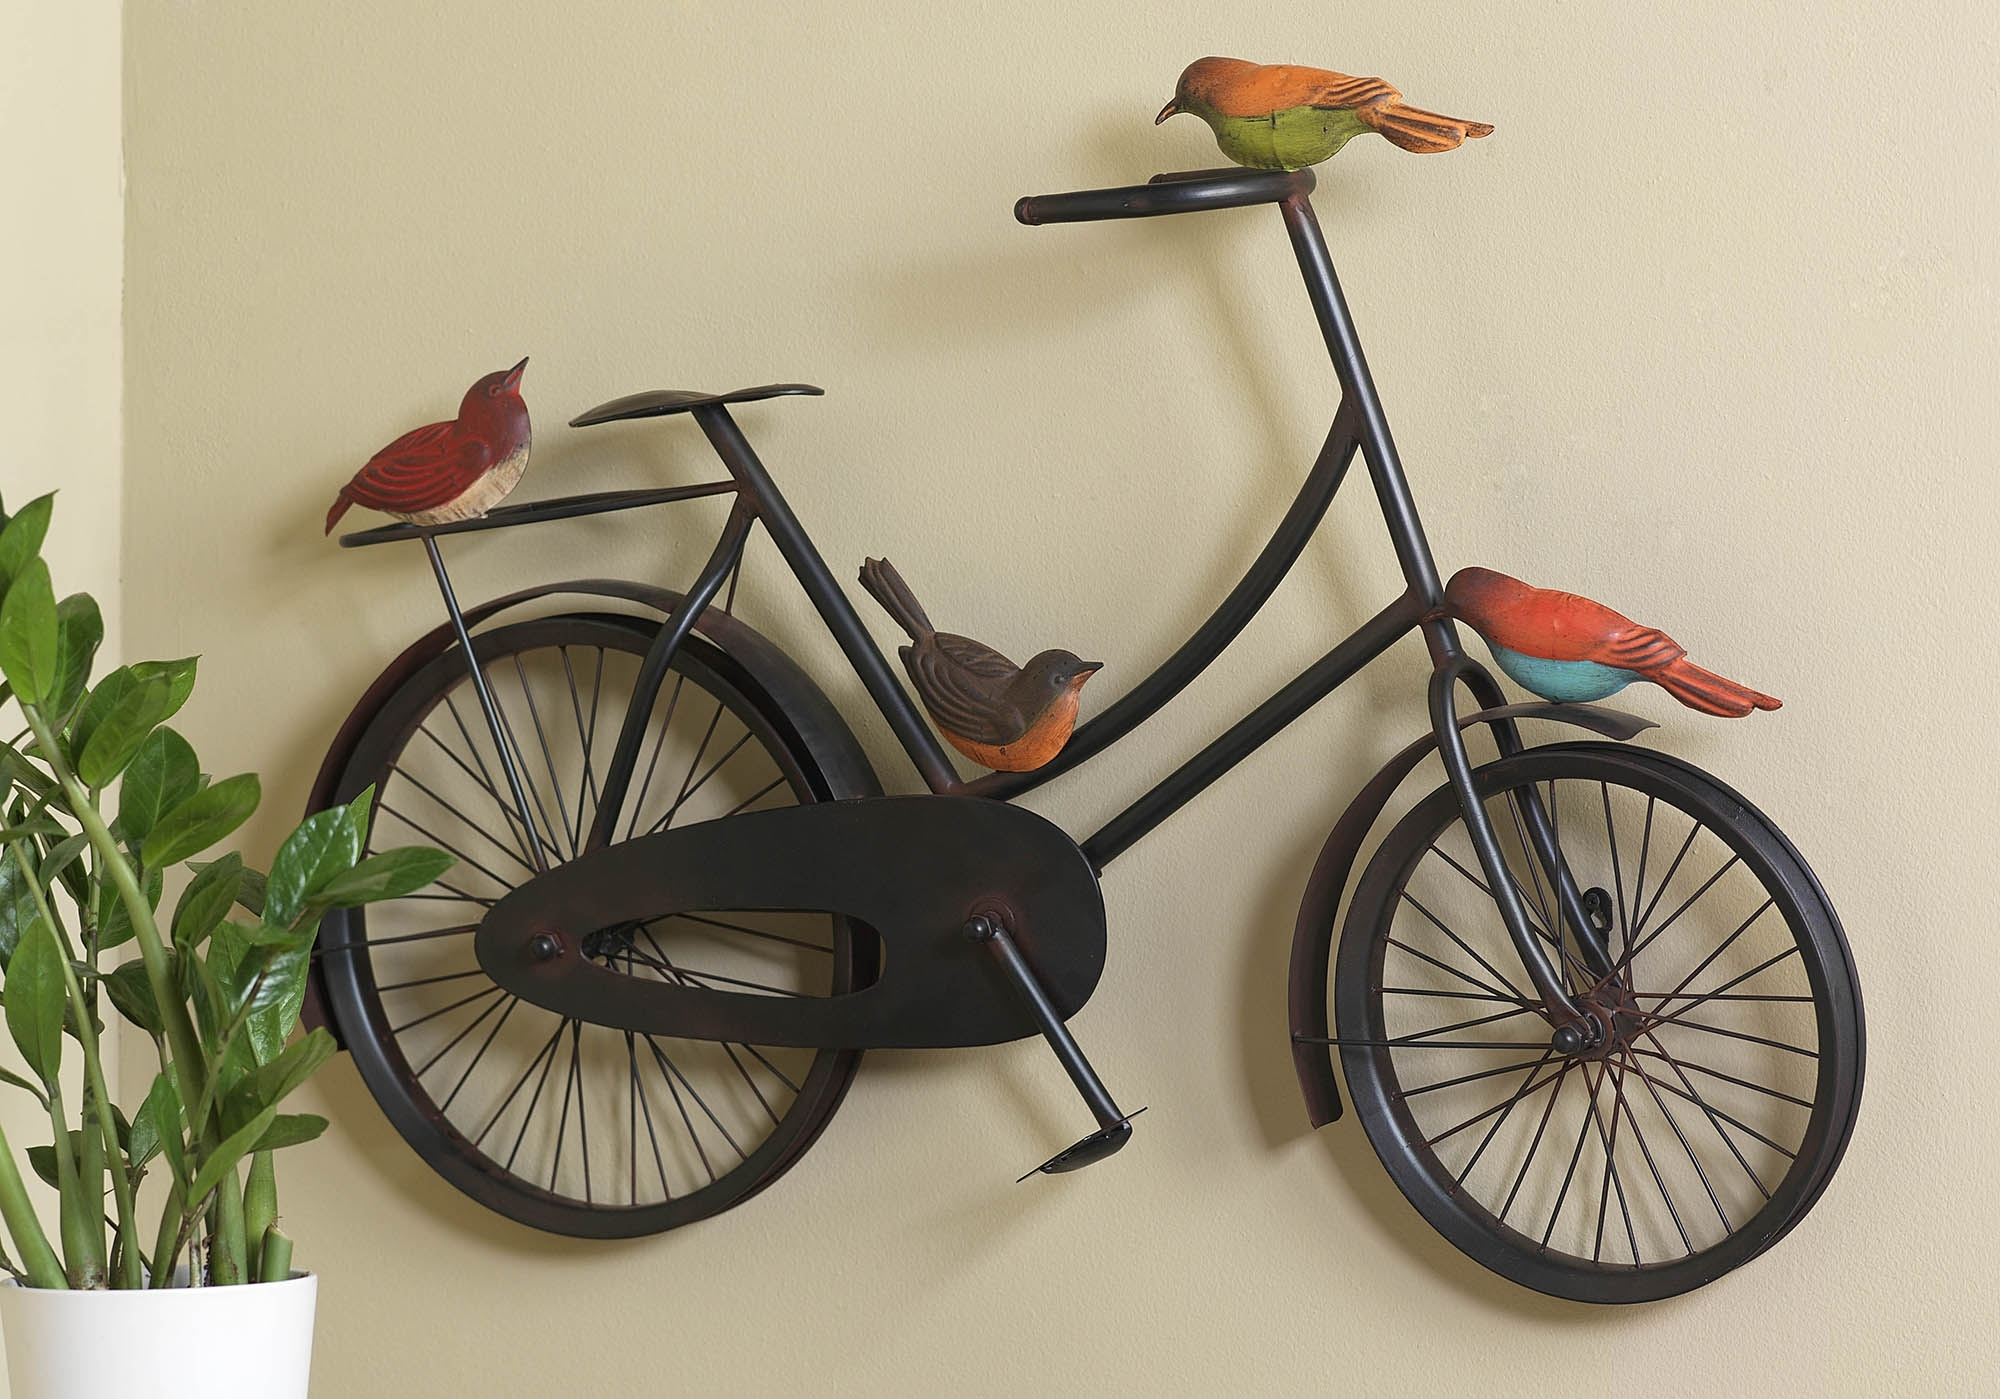 Fashionable Bicycle Wall Art Decor Within Glamorous 50+ Bicycle Wall Decor Inspiration Of Best 25+ Vintage (View 7 of 15)